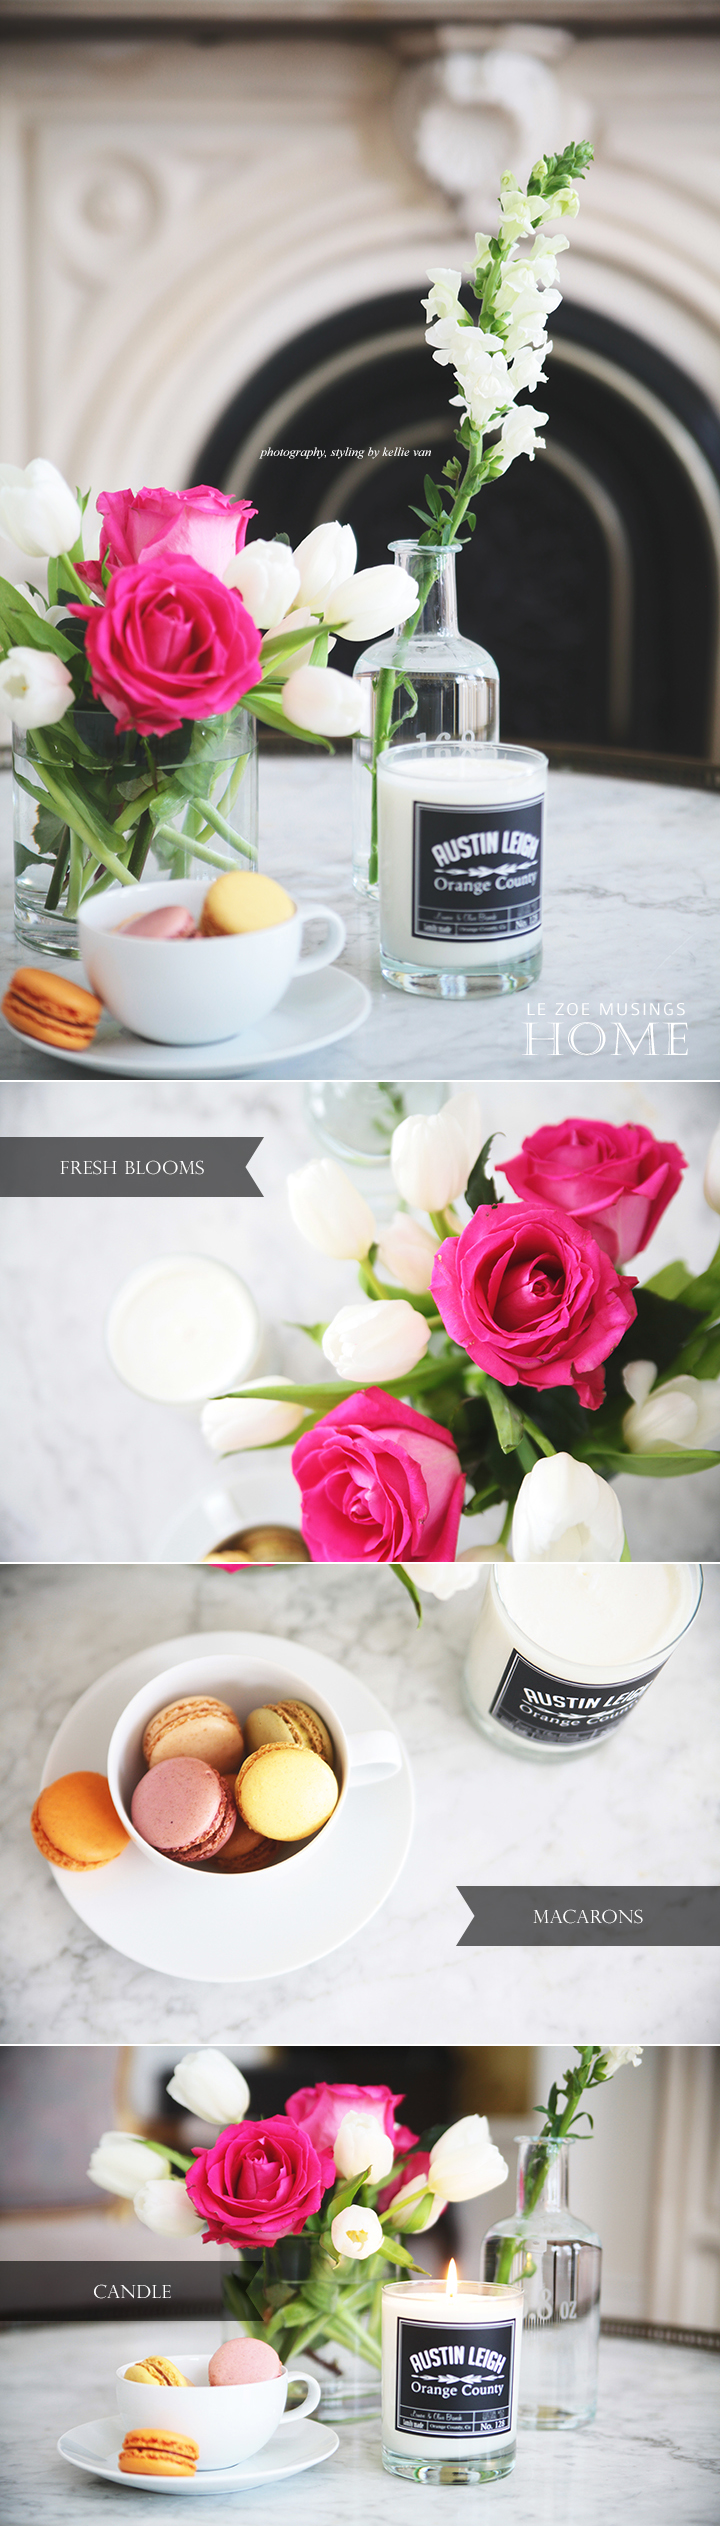 Spring-Ready Coffe Table 2by Le Zoe Musings